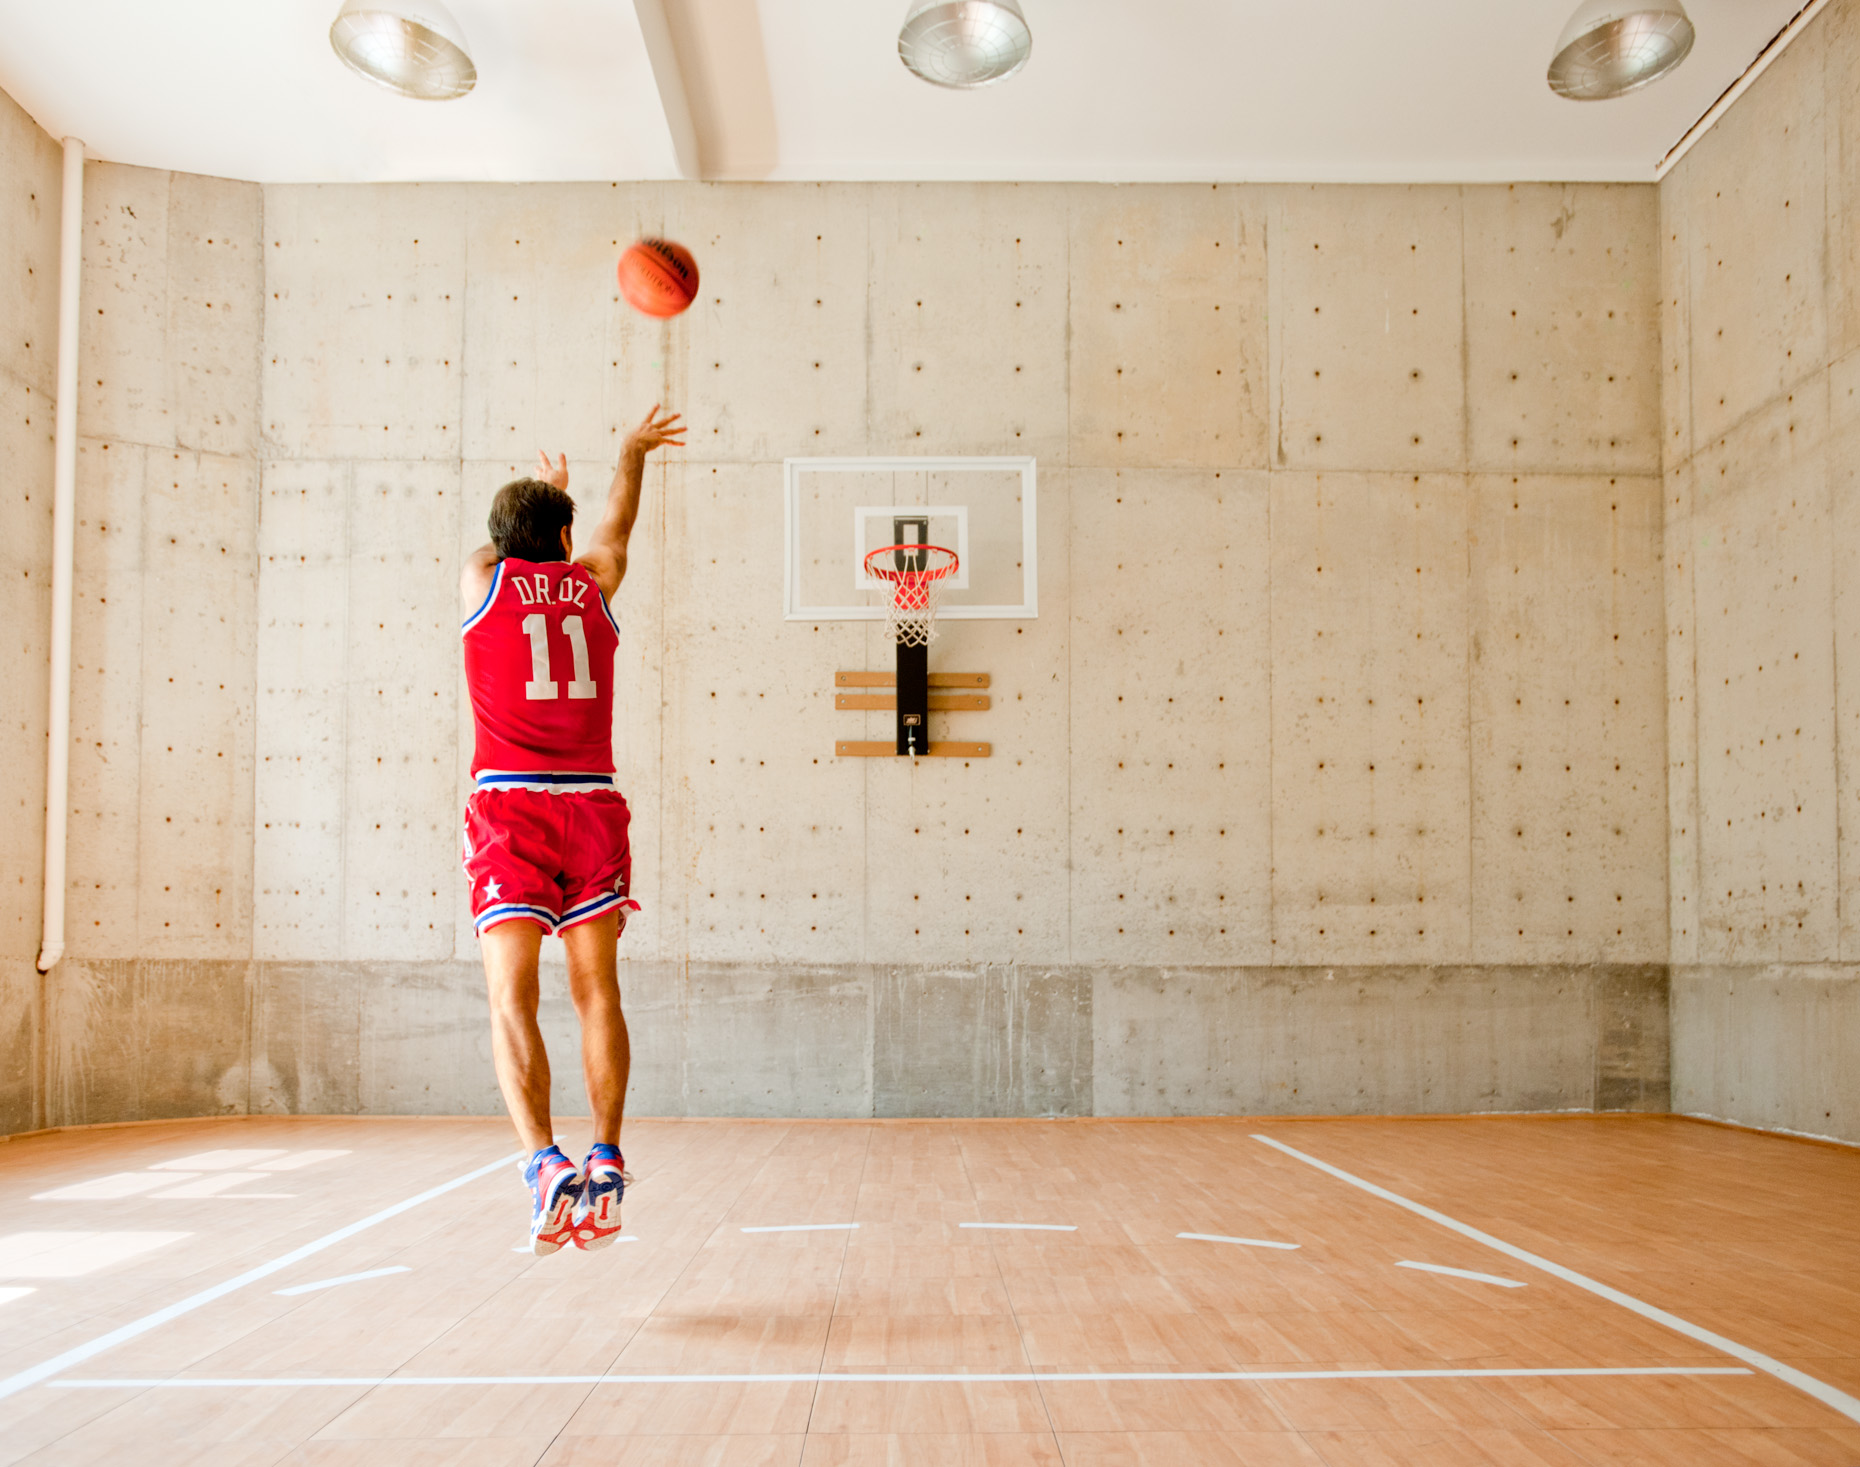 Dr. Oz | Home Basketball Court | Editorial Photographer